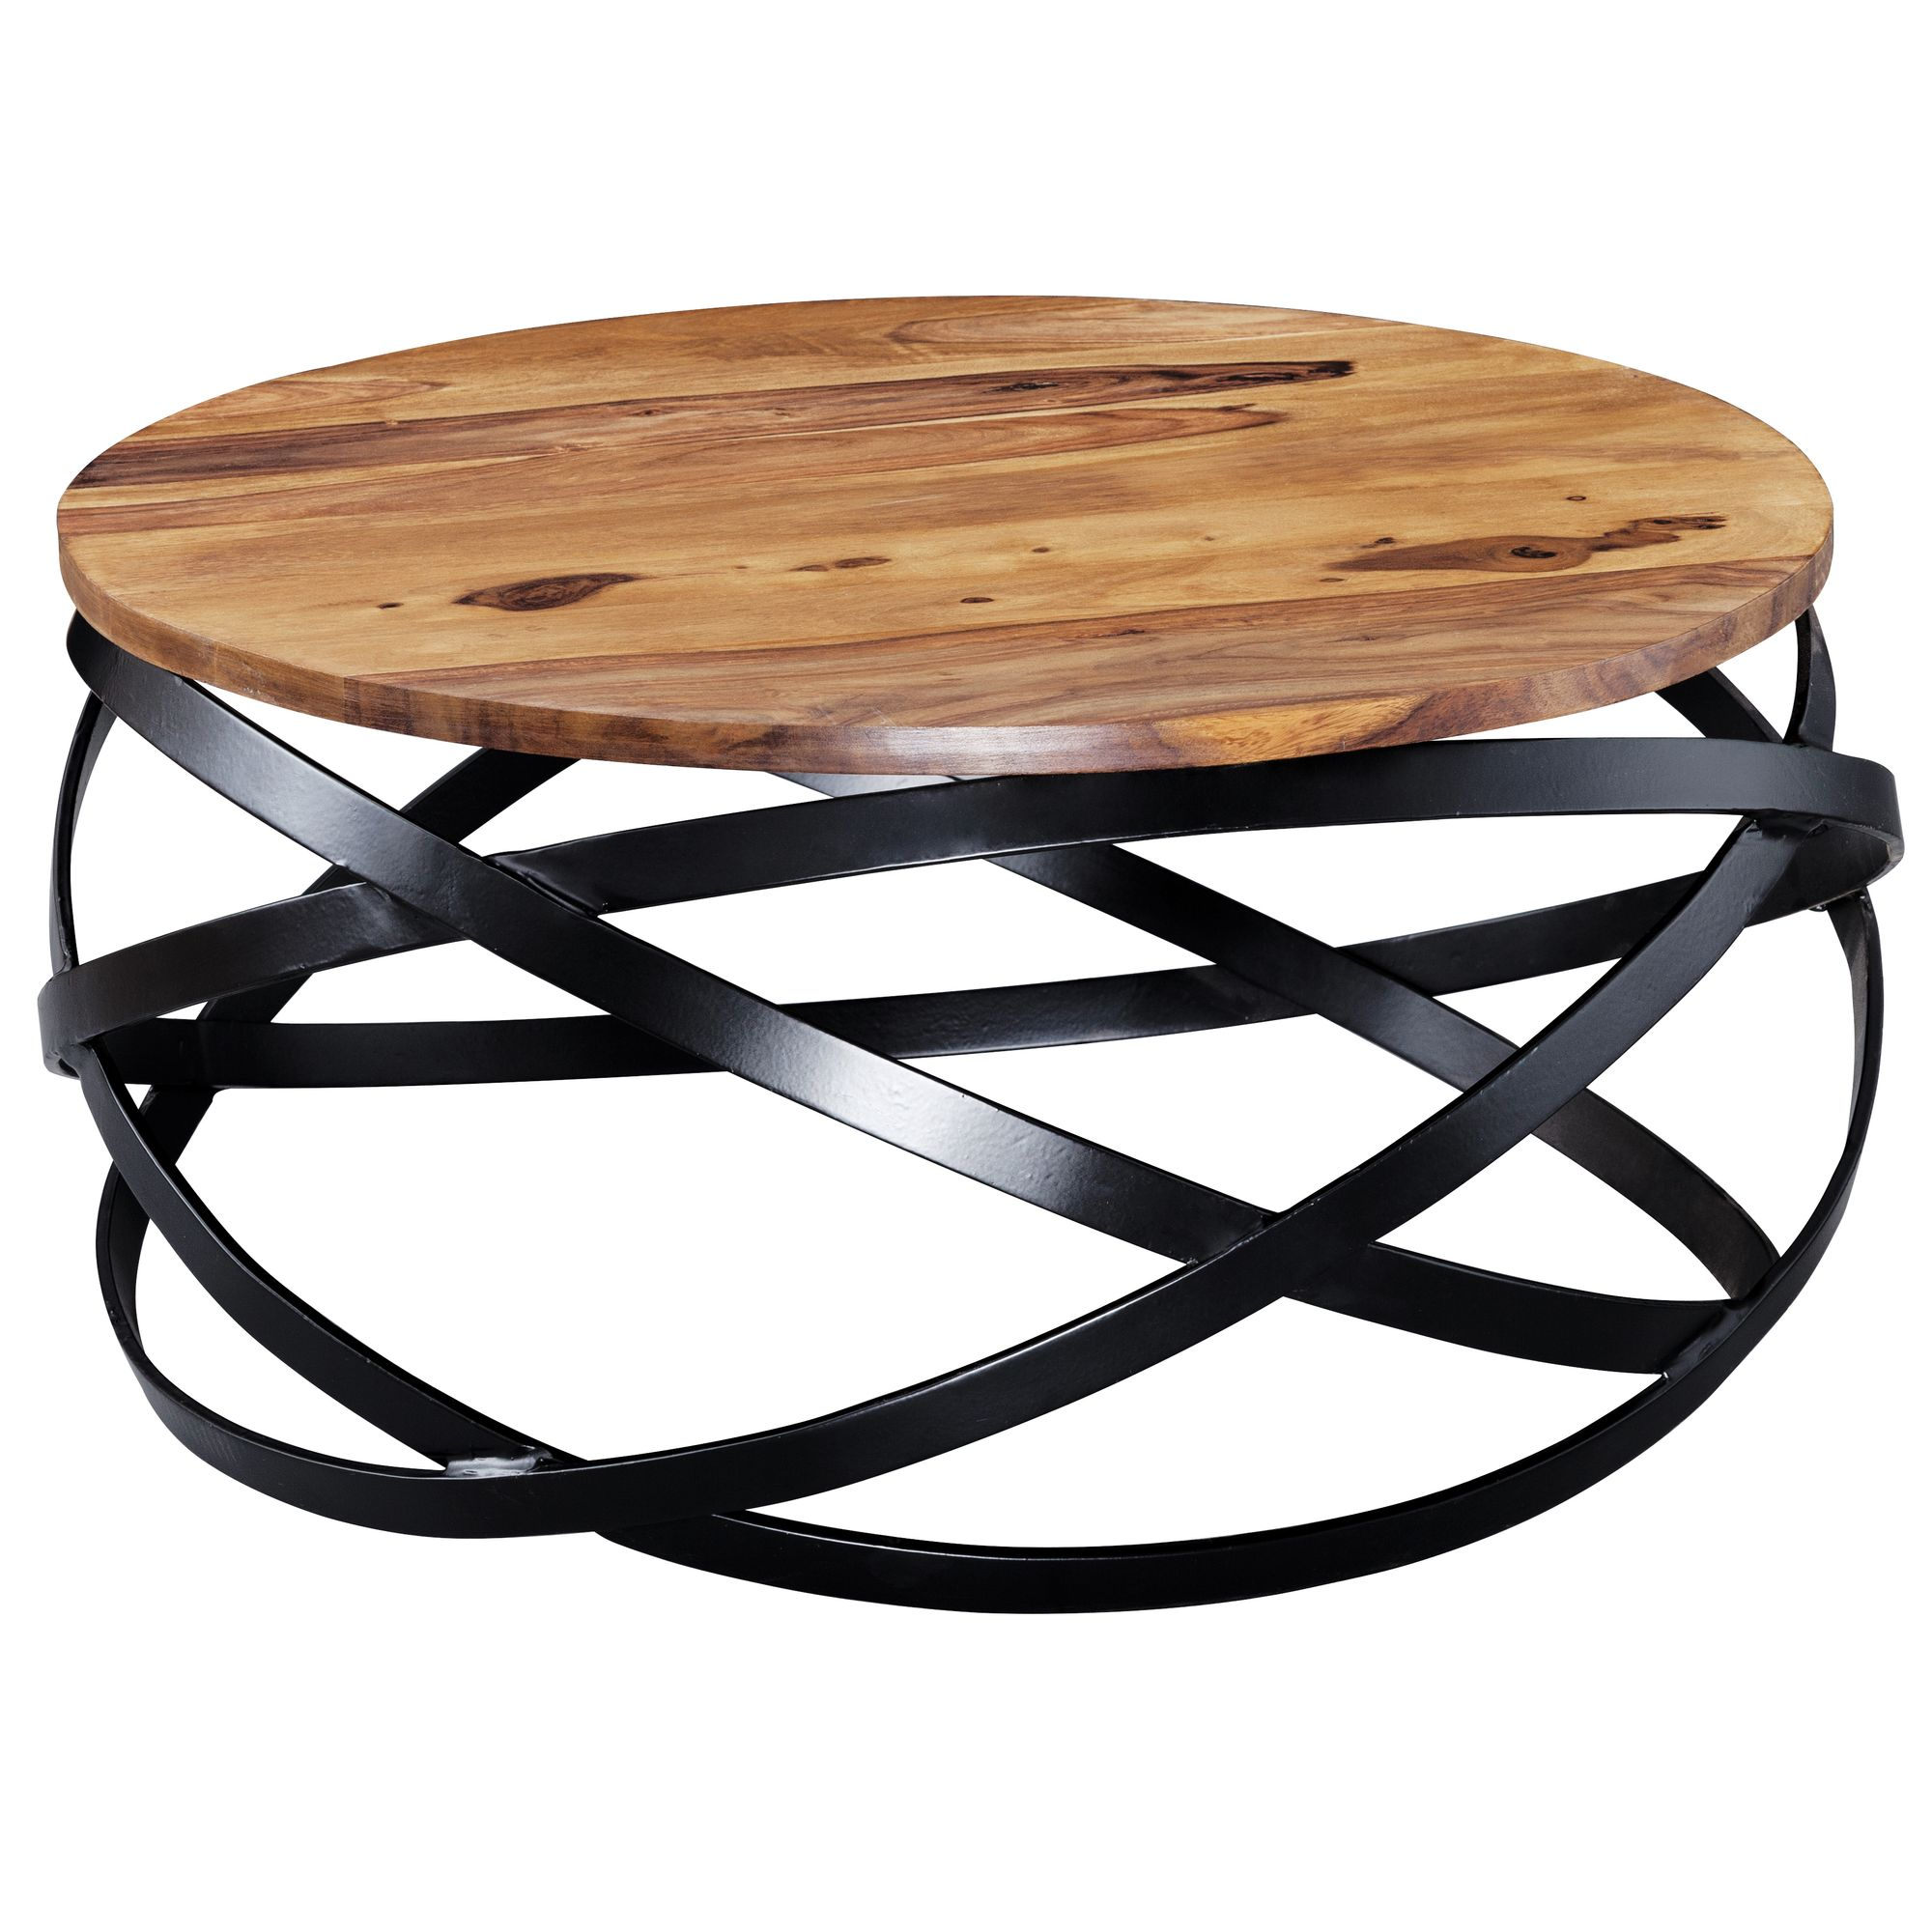 Wohnling Couchtisch Coffee Table Manur Sheesham Wood 60x60x30 Cm • Artkomfort